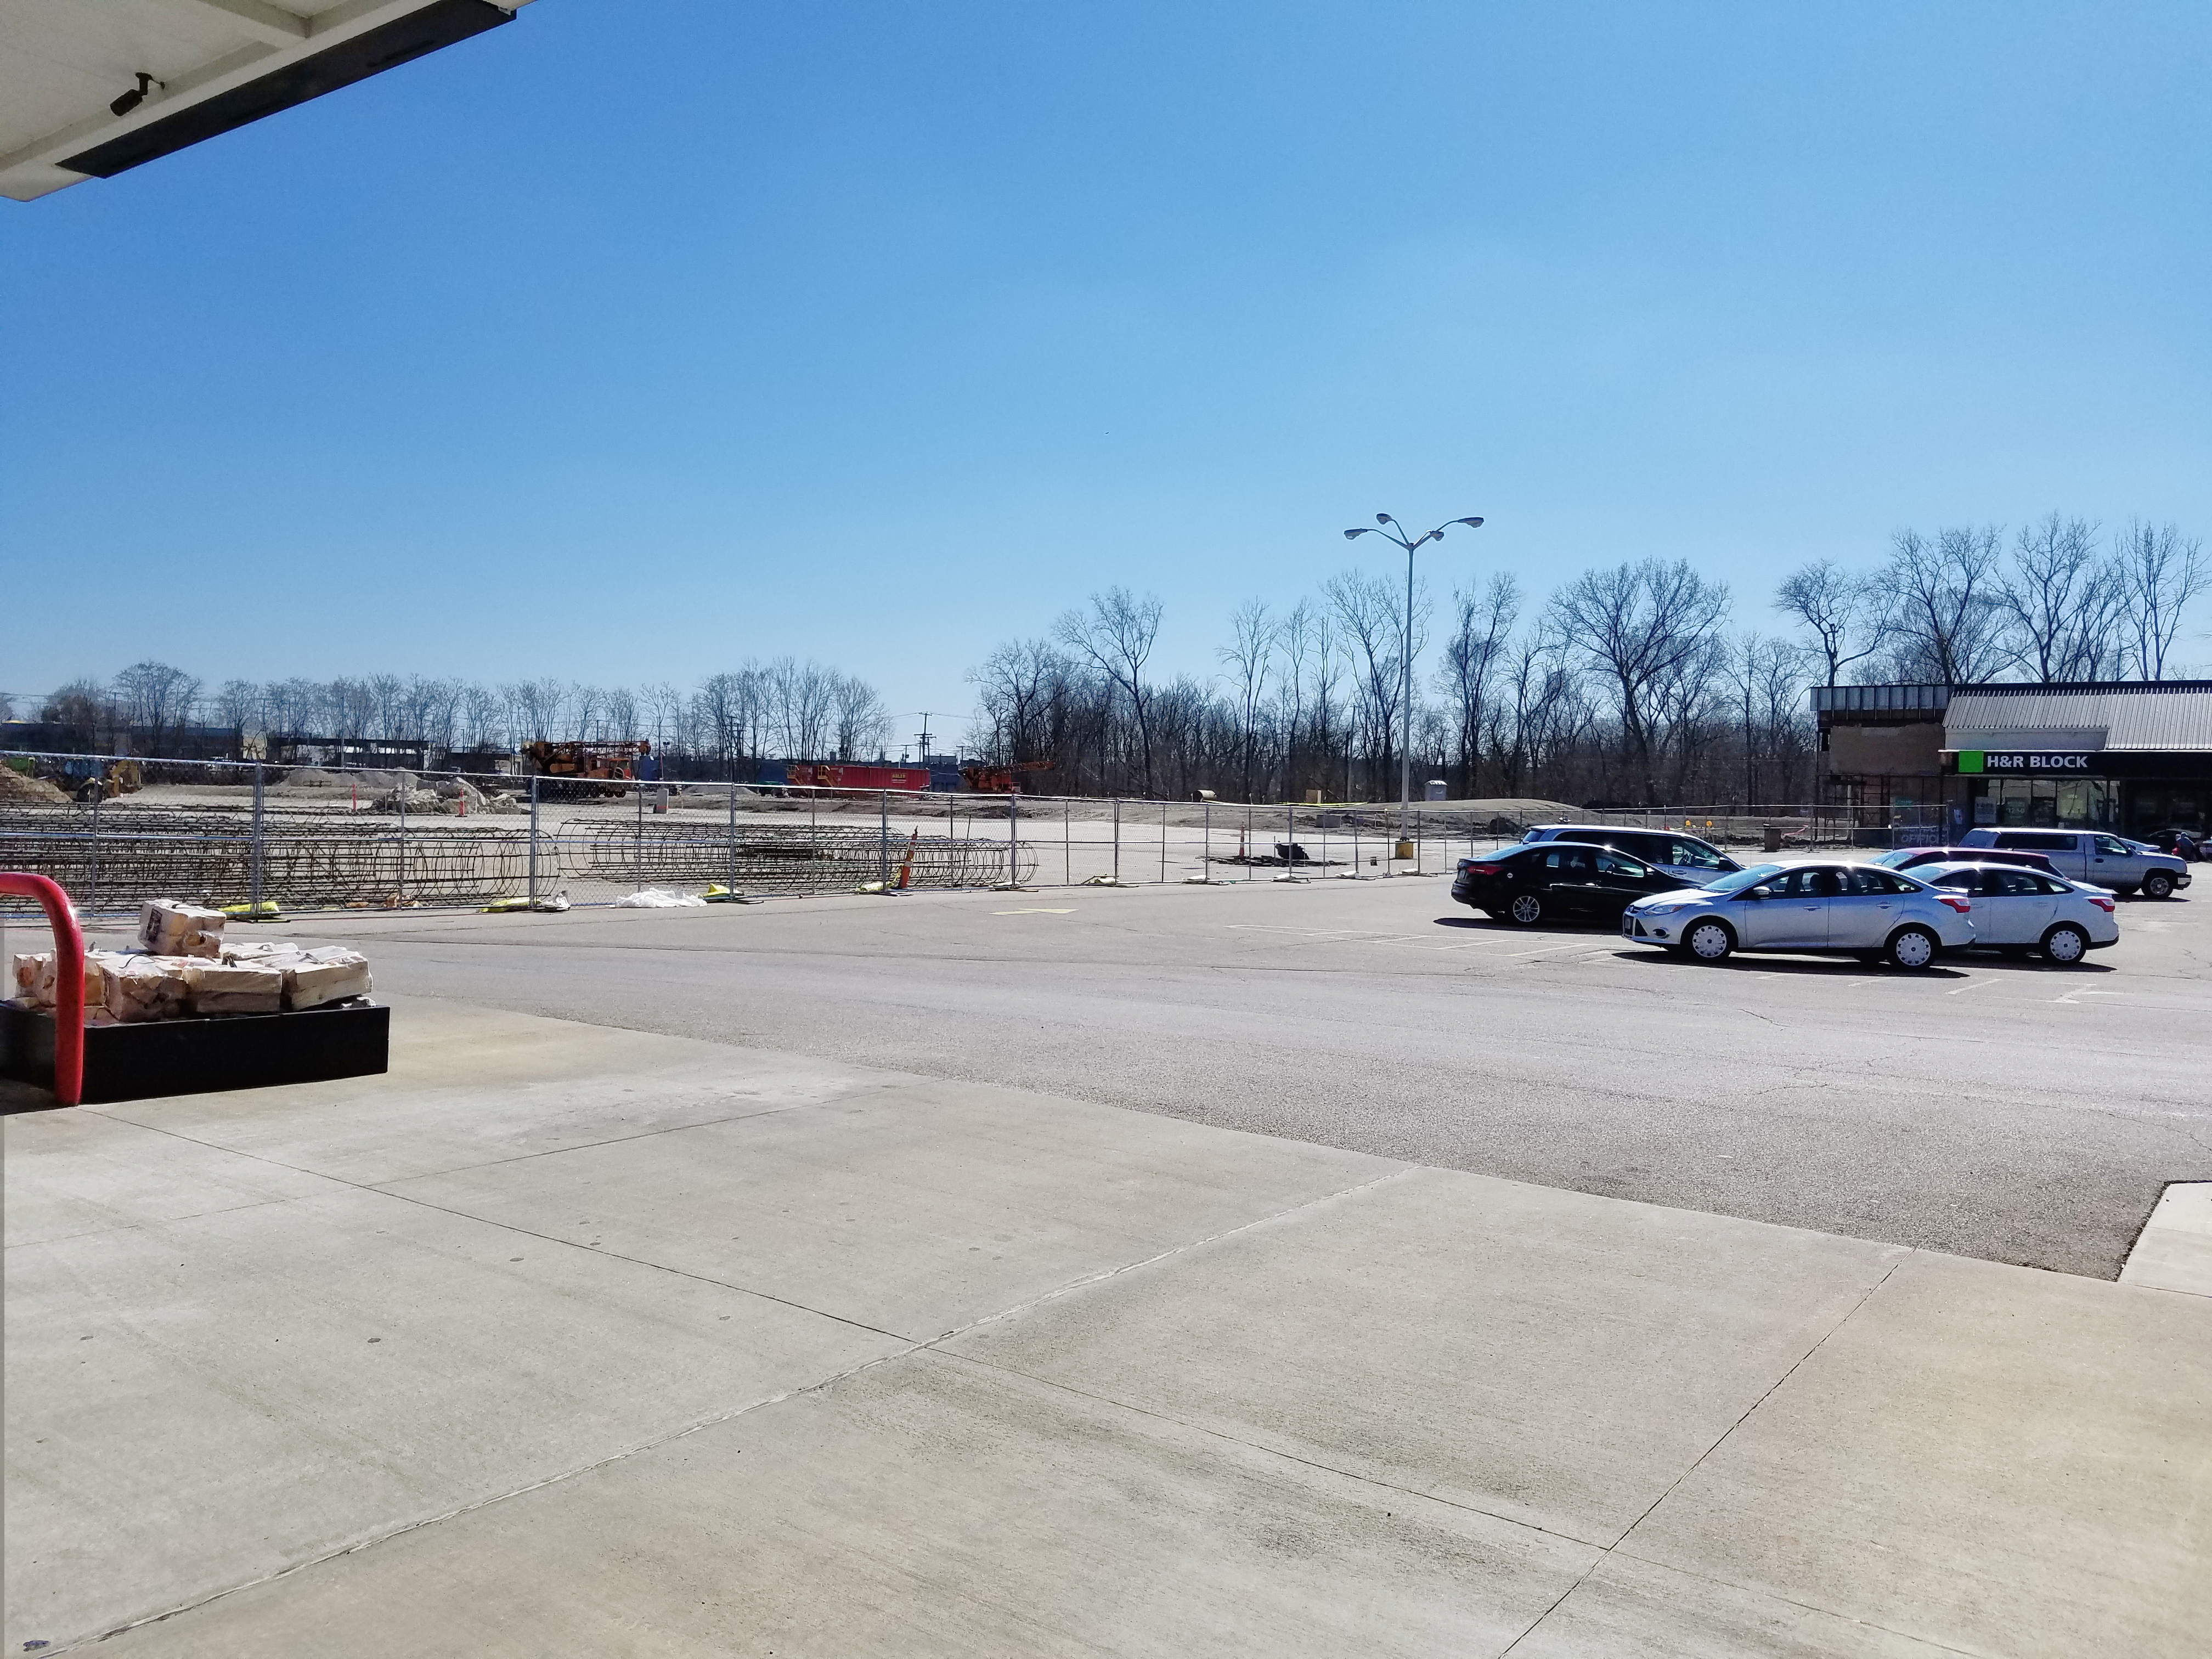 Former kmart site in lancaster, ohio photo